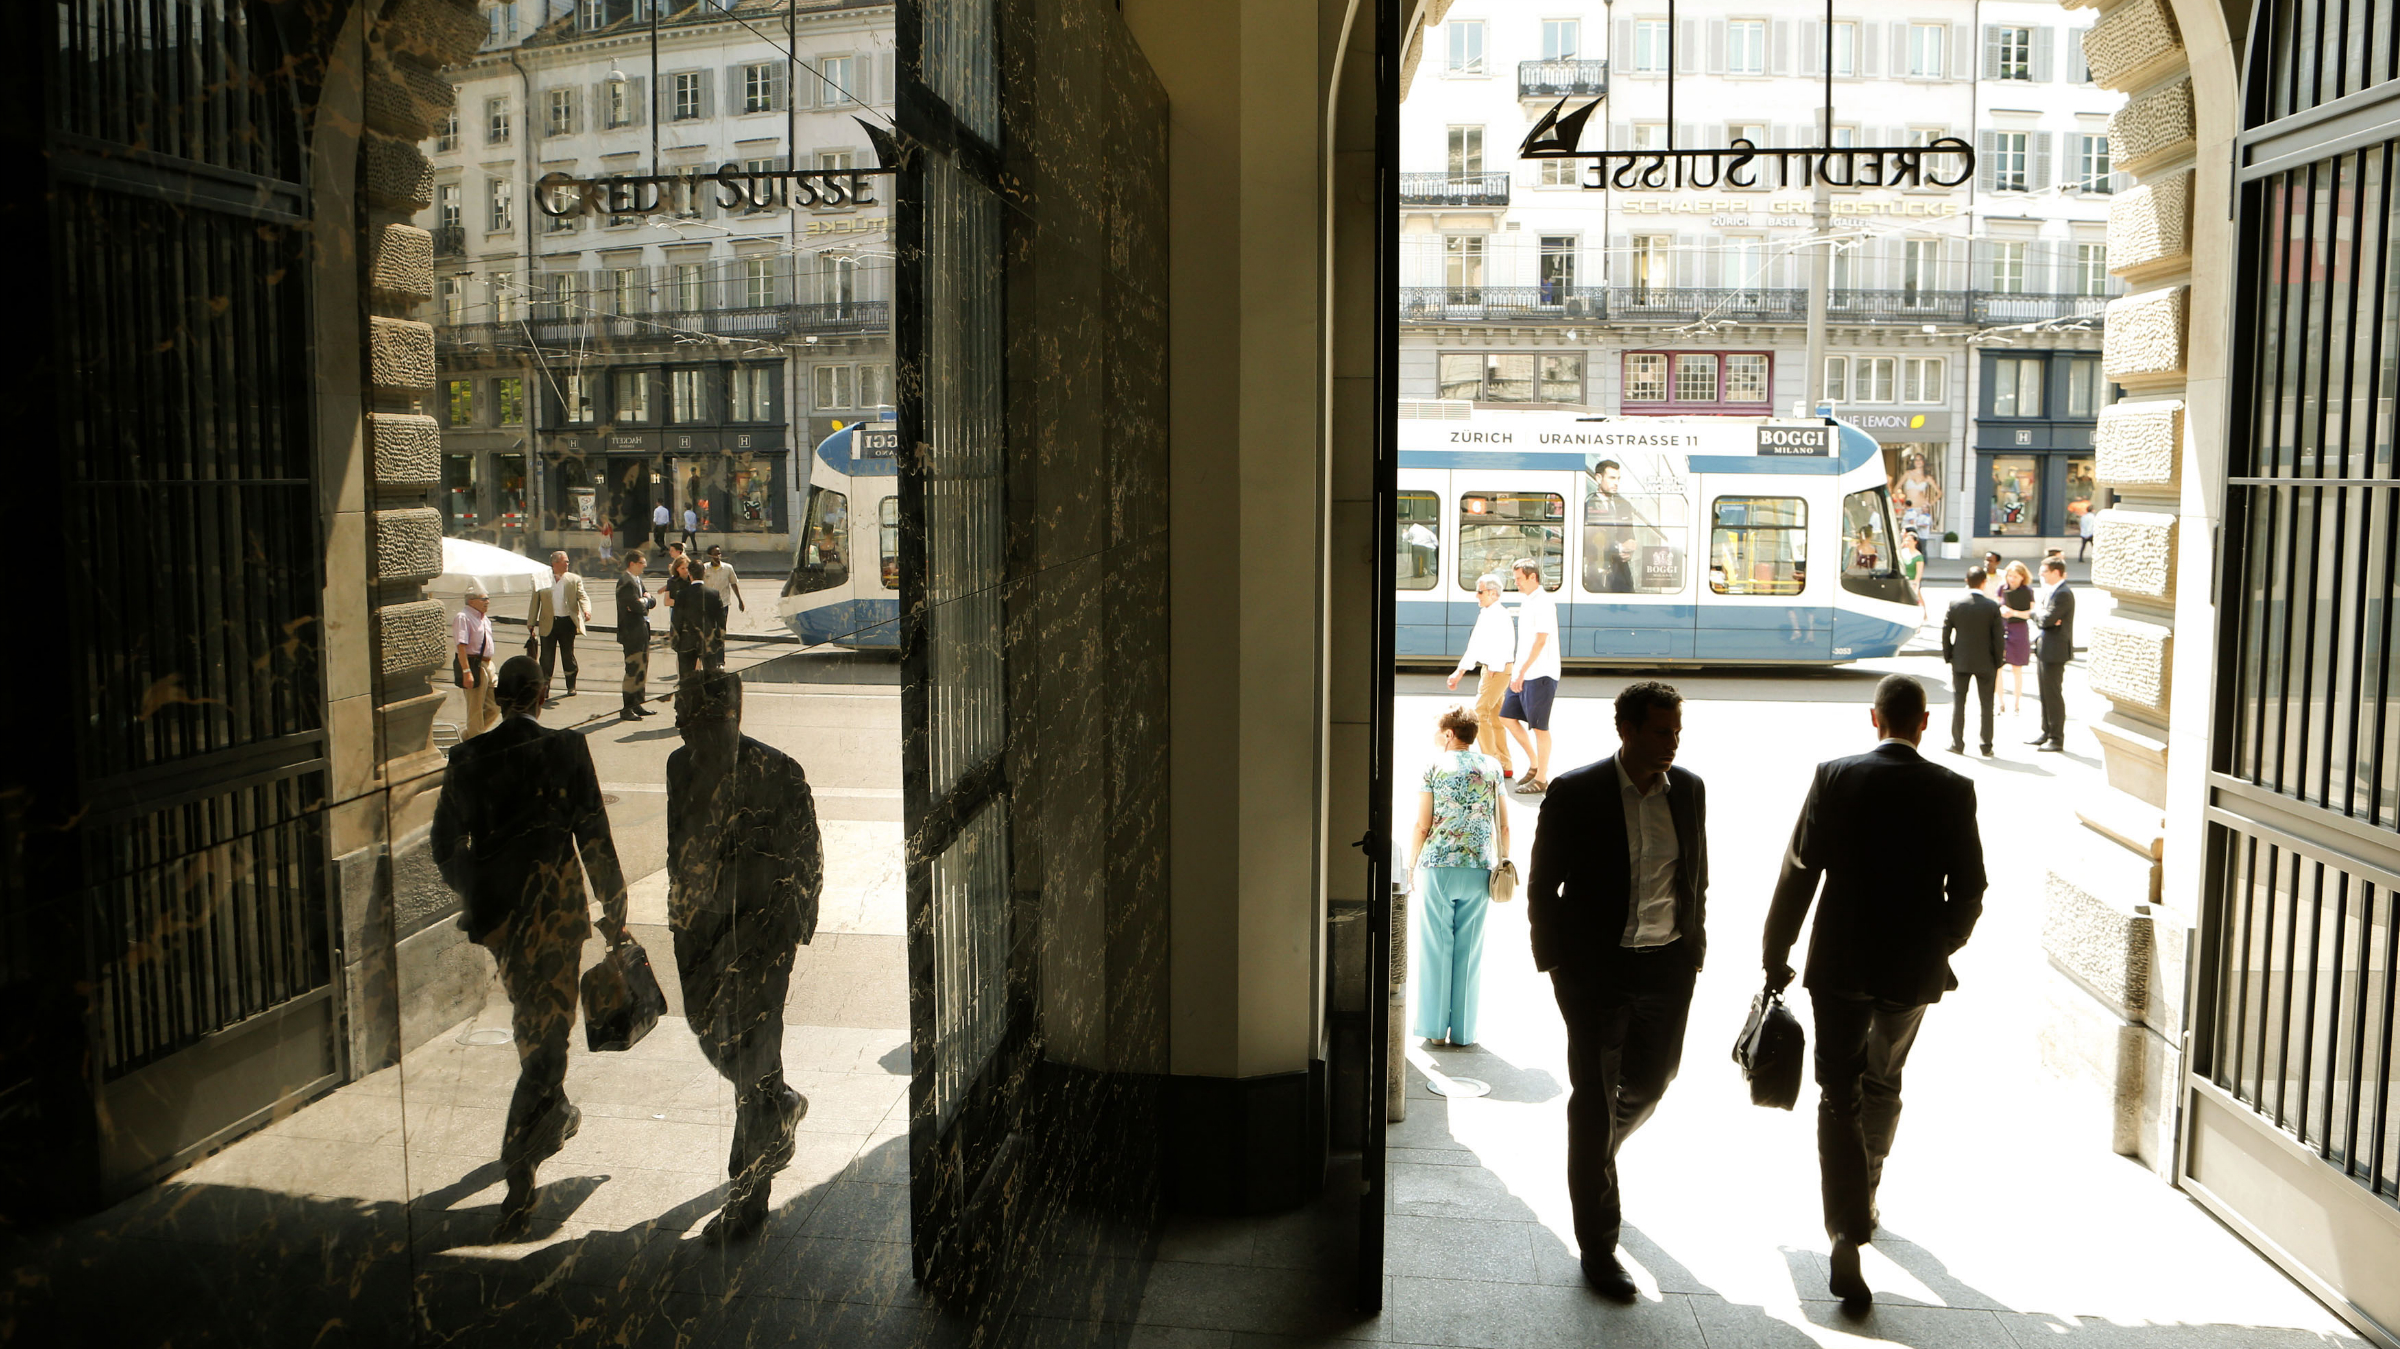 People walk through the entrance of the headquarters of Swiss bank Credit Suisse at the Paradeplatz square in Zurich July 25, 2013. Credit Suisse's investment bank drove a one-third jump in second-quarter group earnings, while higher interest rates should help future profits at its private bank, the lender said on Thursday. The Zurich-based bank's normally stable wealth management arm has been rattled by a global crackdown on Swiss bank secrecy with European clients withdrawing money to avoid being snared by tax-evasion probes. REUTERS/Arnd Wiegmann